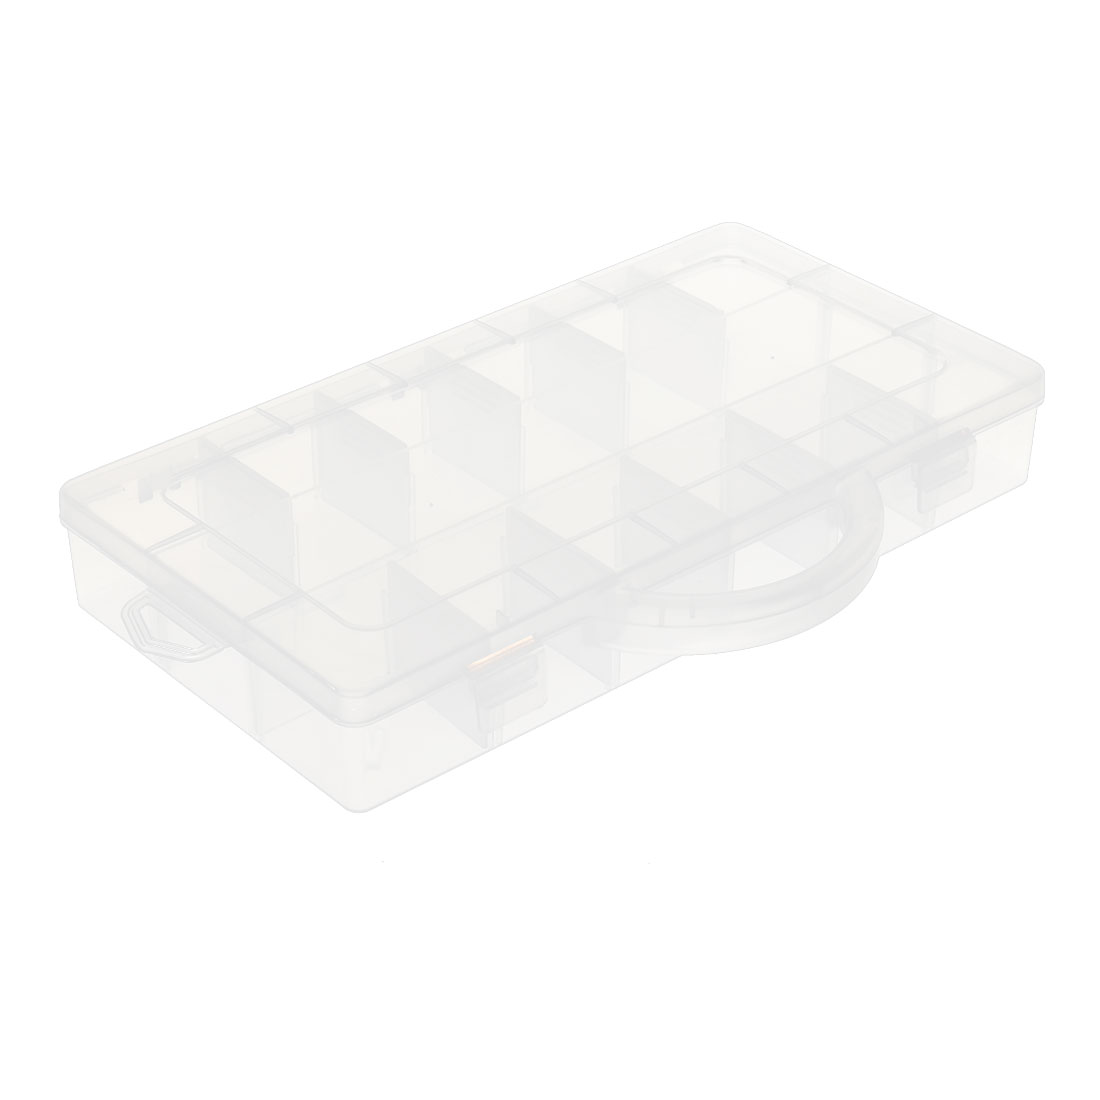 Household Craft Tool Parts Gatget Portable Storage Case Box Divider Organizer